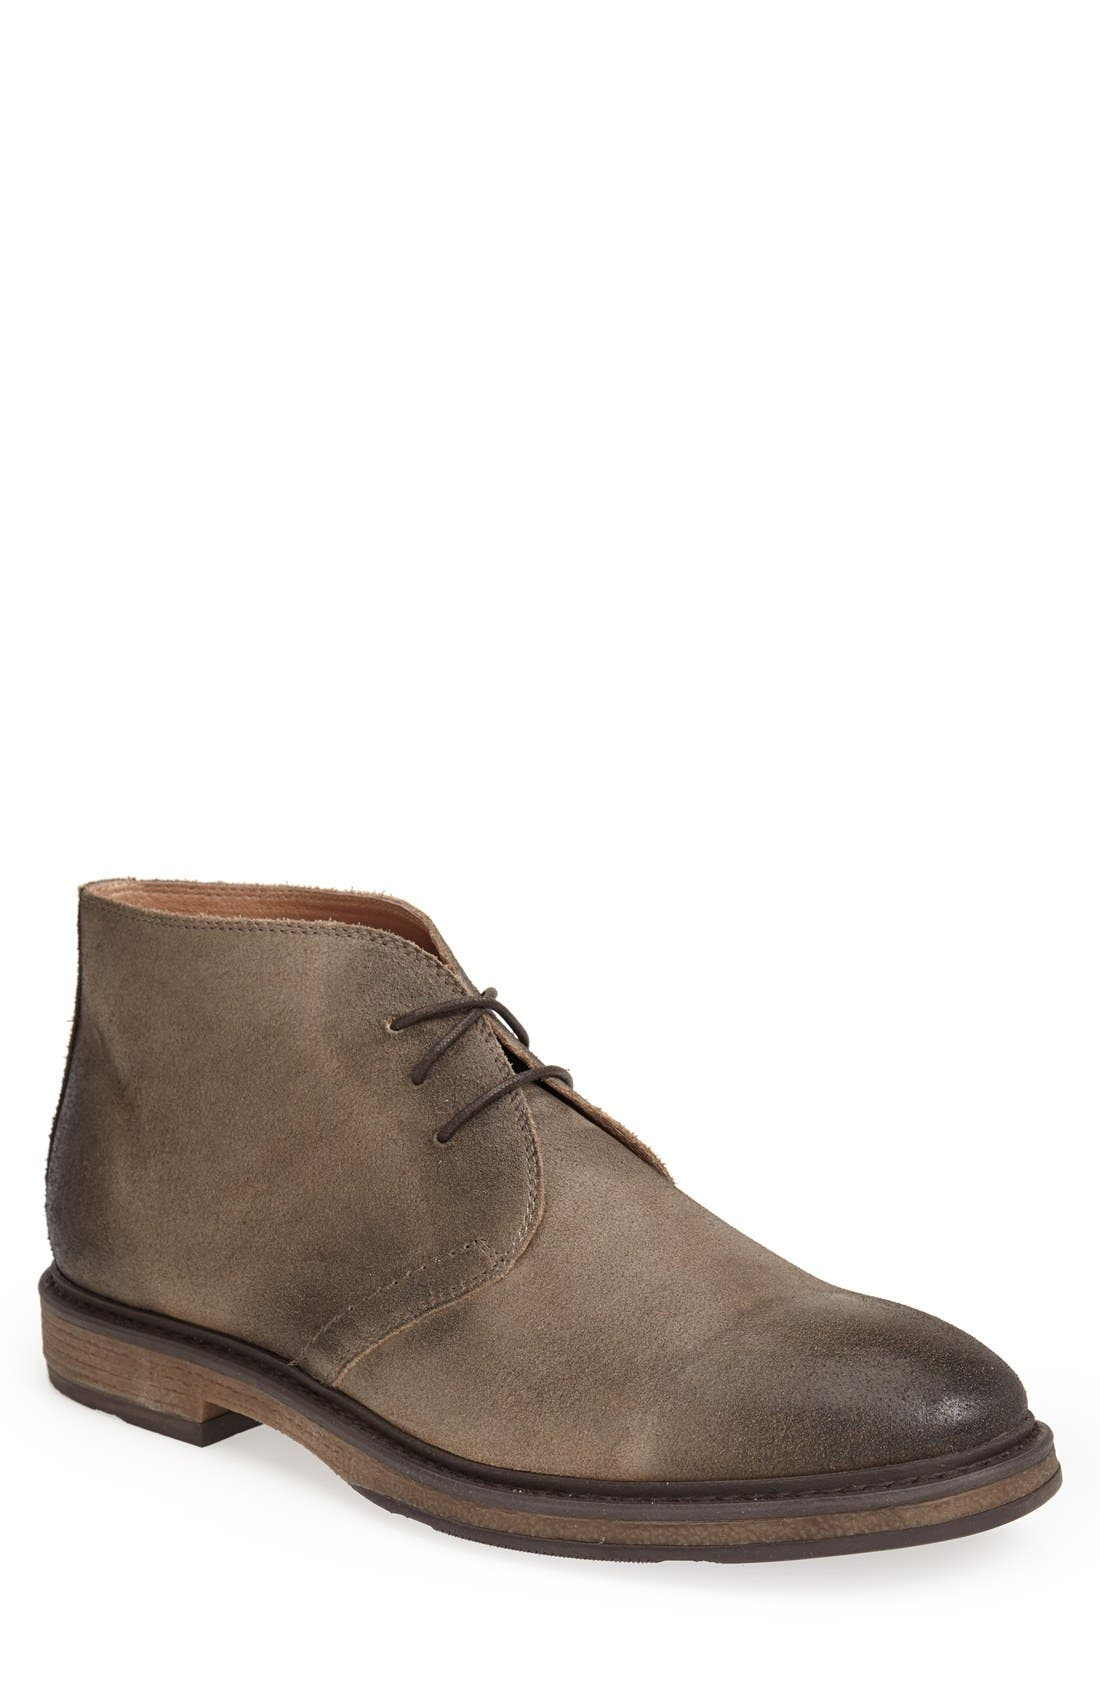 'Canyon' Chukka Boot,                             Main thumbnail 3, color,